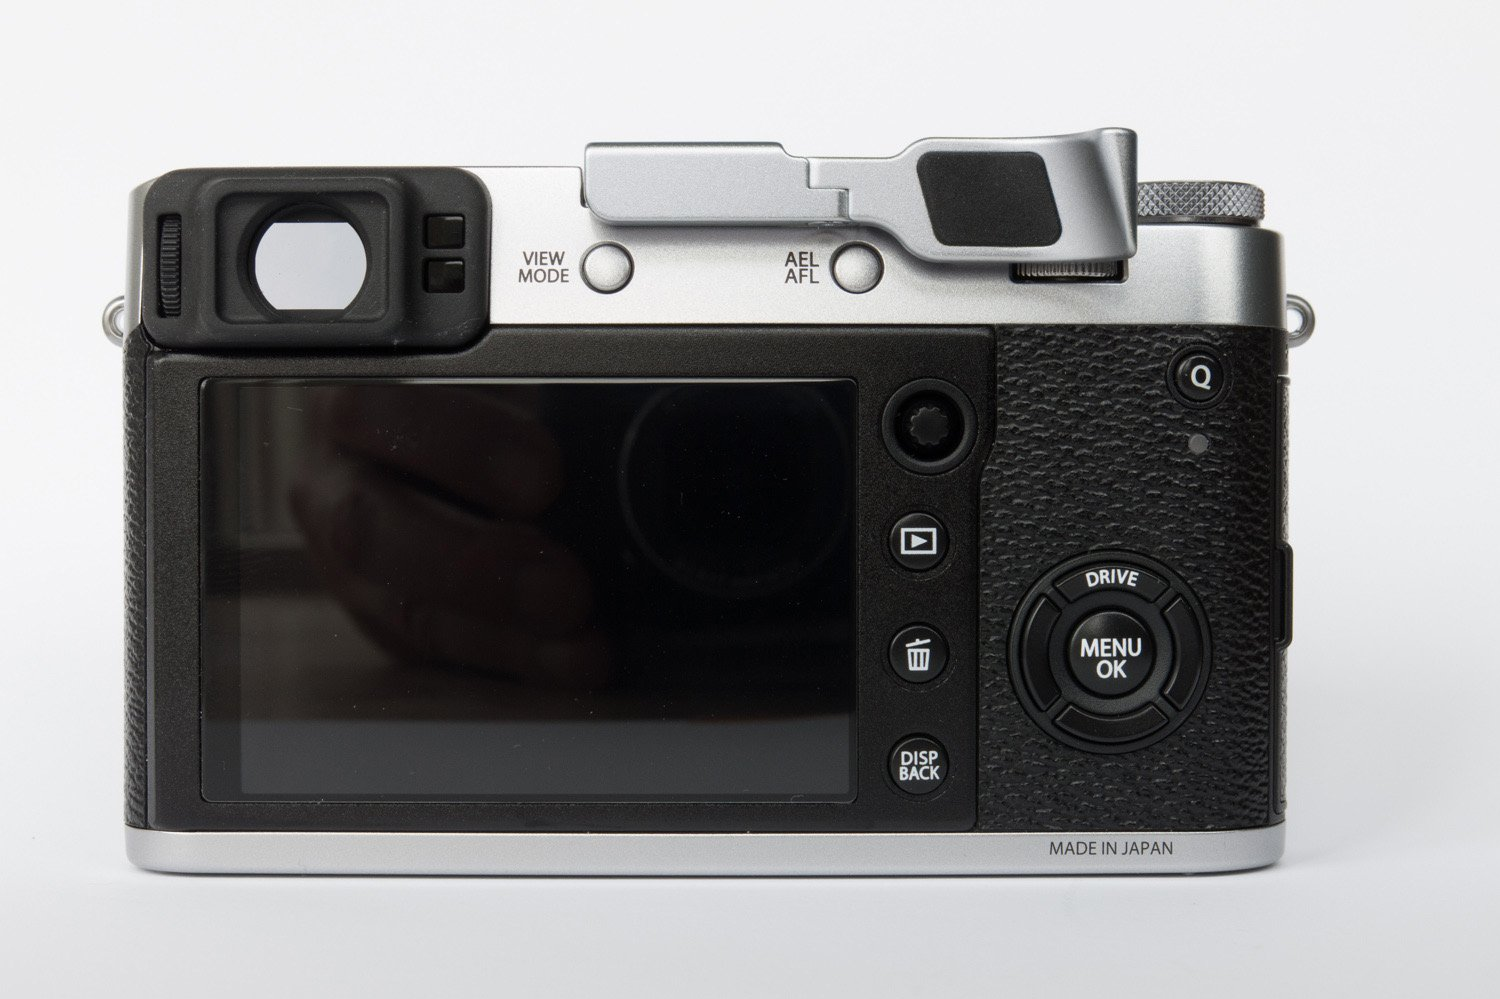 Fujifilm X100F Thumb Grip by Lensmate - Silver by LESNMATE (Image #4)